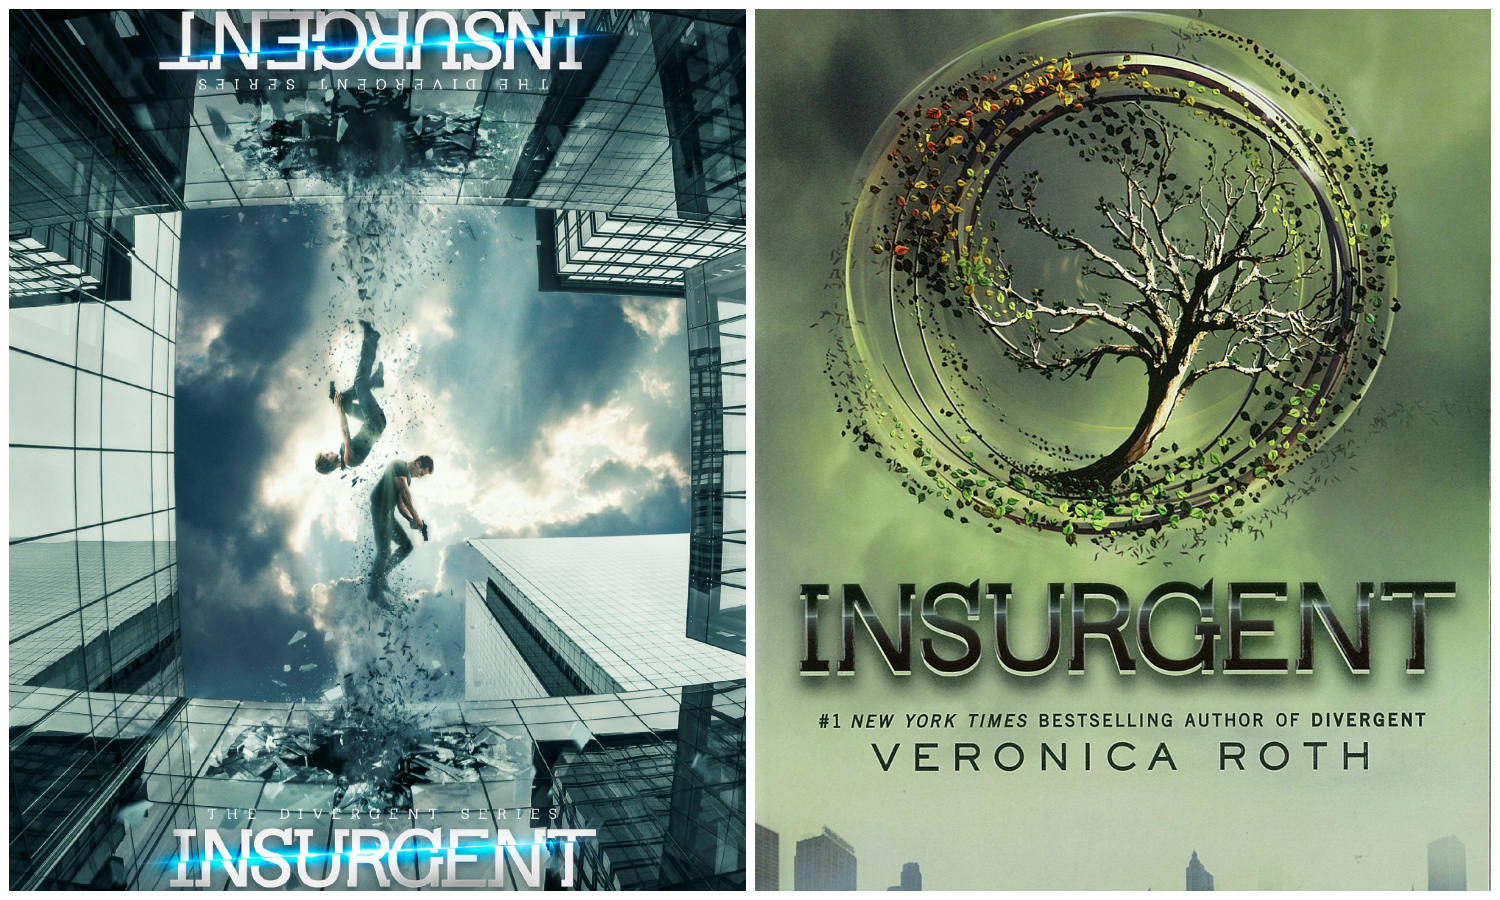 Insurgent (2015) Movie vs Book